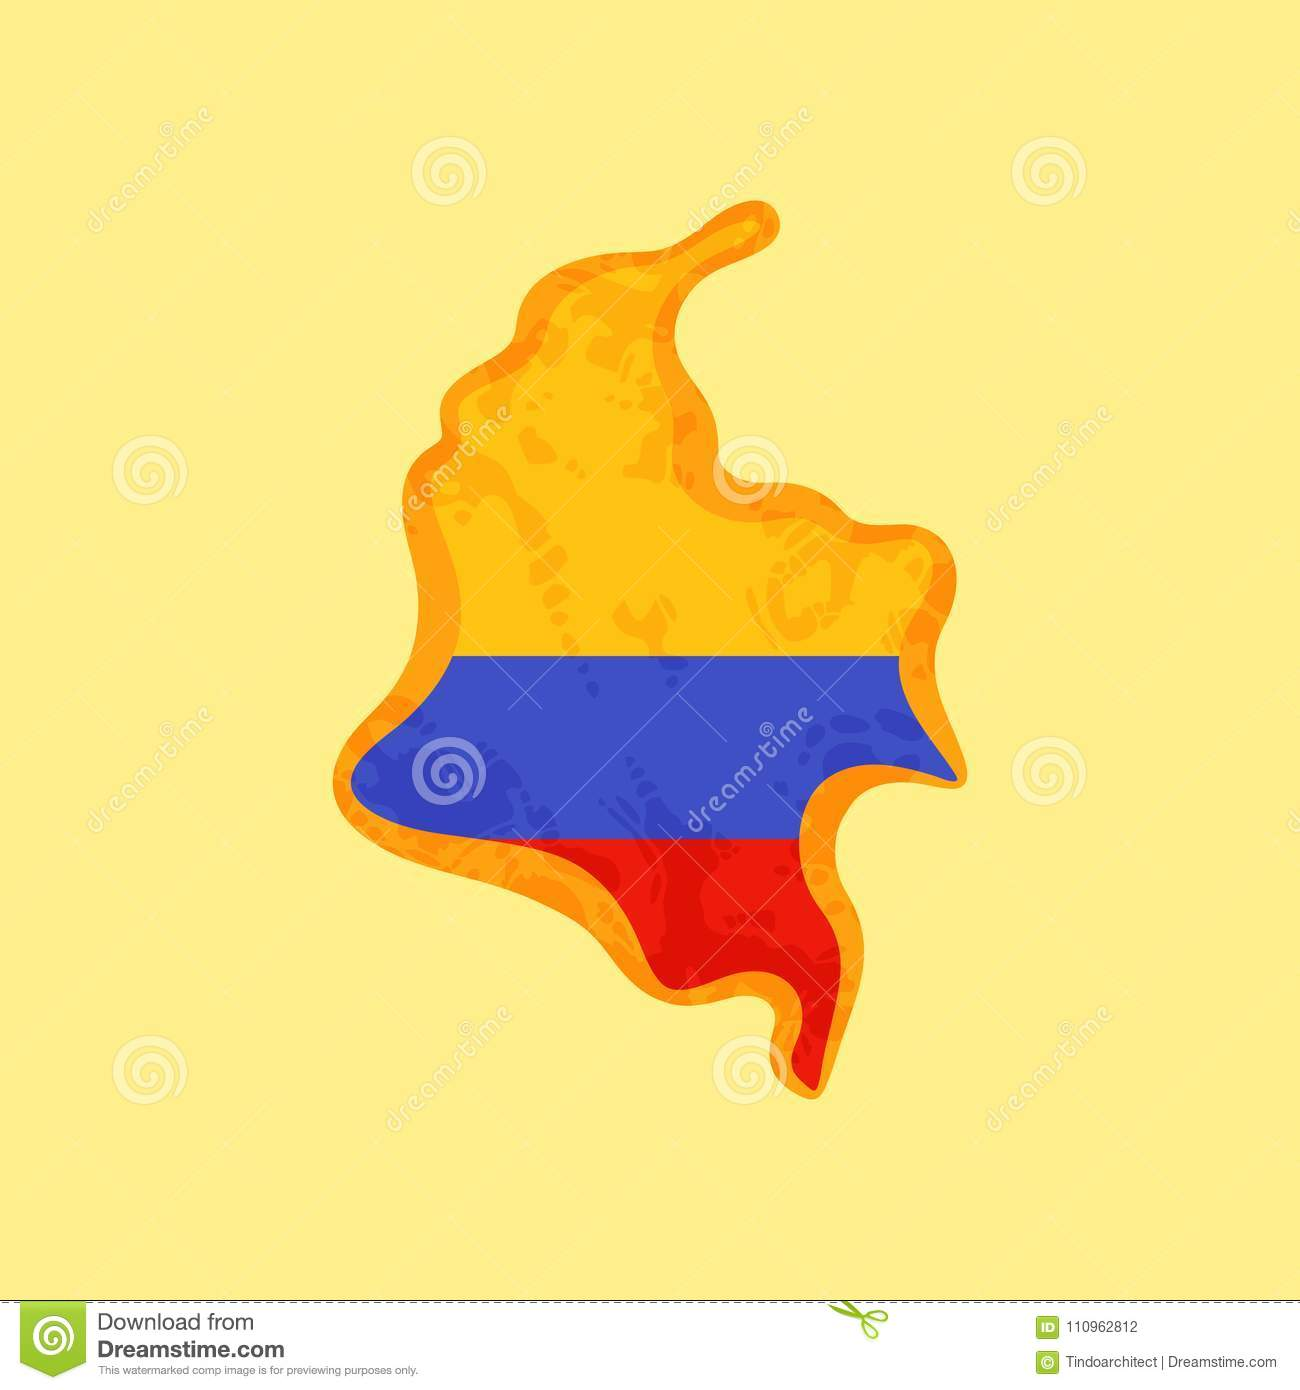 colombia map colored with colombian flag stock vector